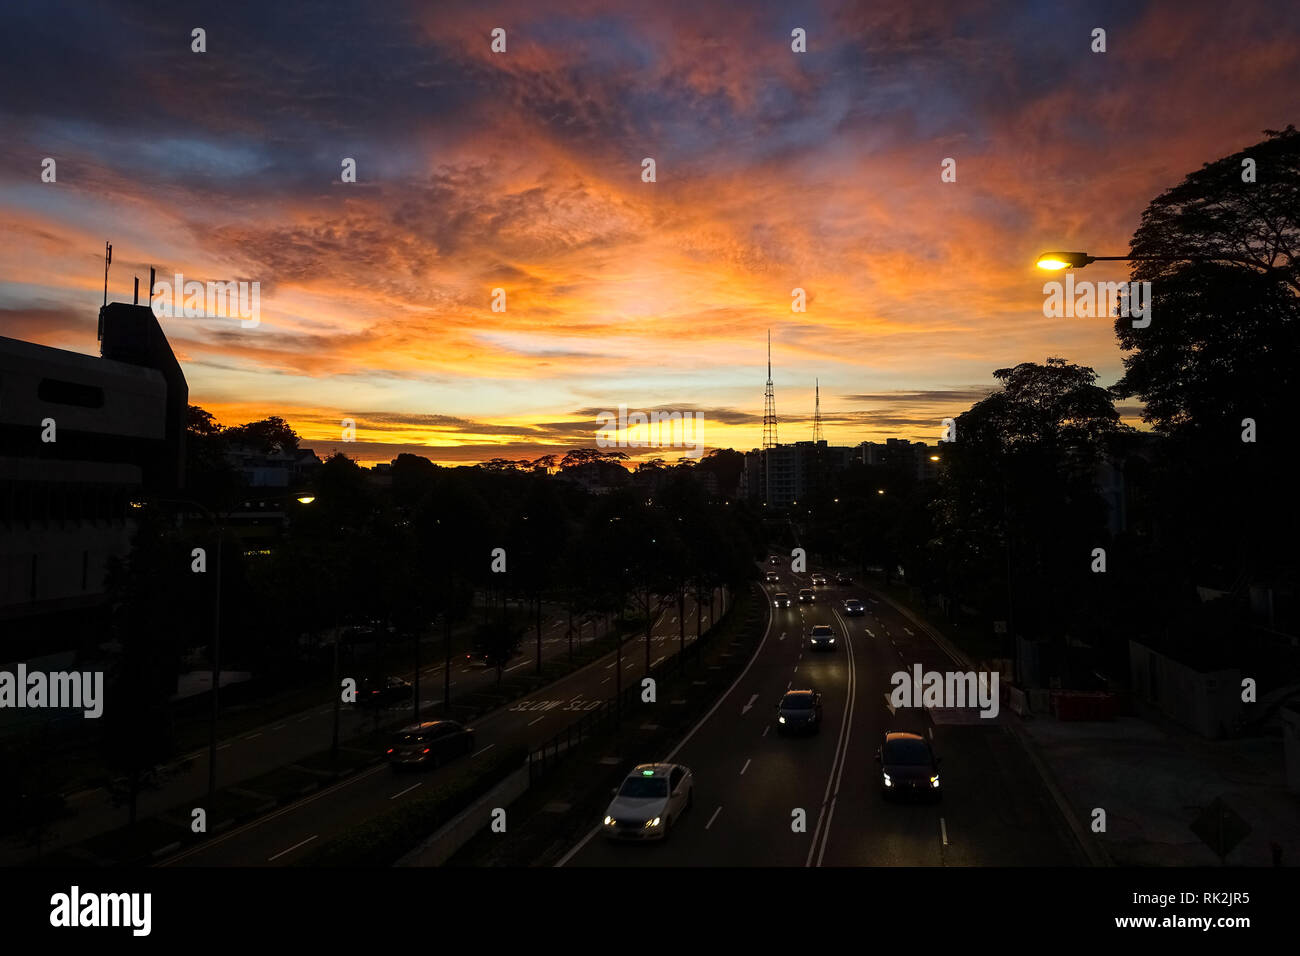 Traffic Headlights and Pink Sunset in Clouds Over Bukit Timah Rd. - Singapore City - Stock Image